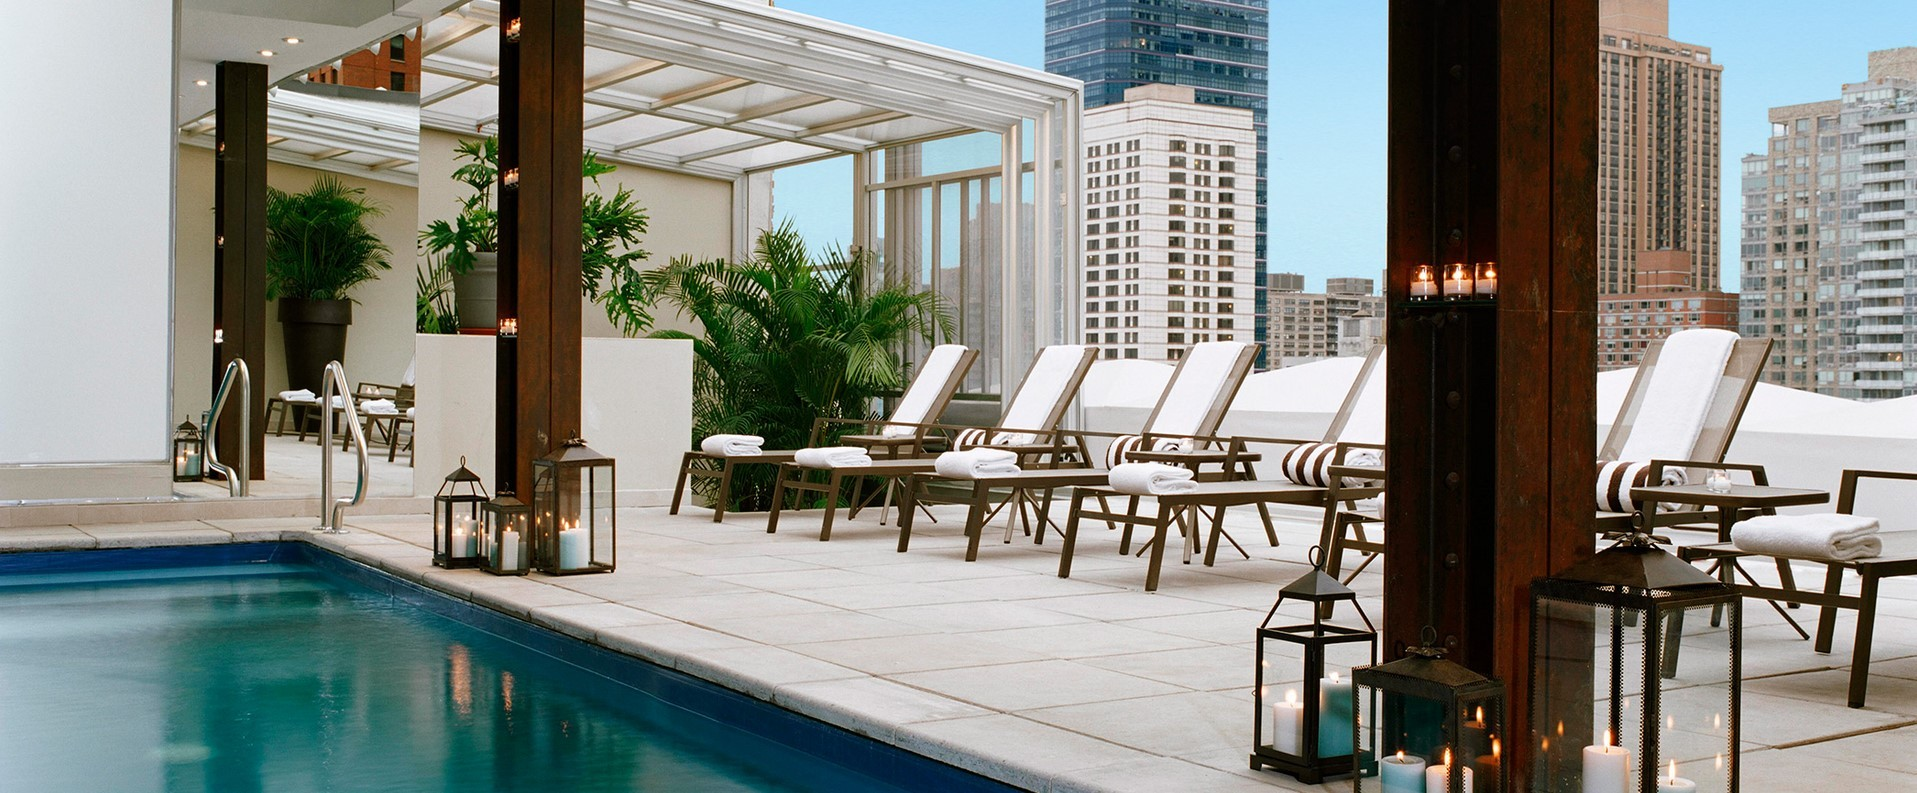 Hotel Lincoln Rooftop